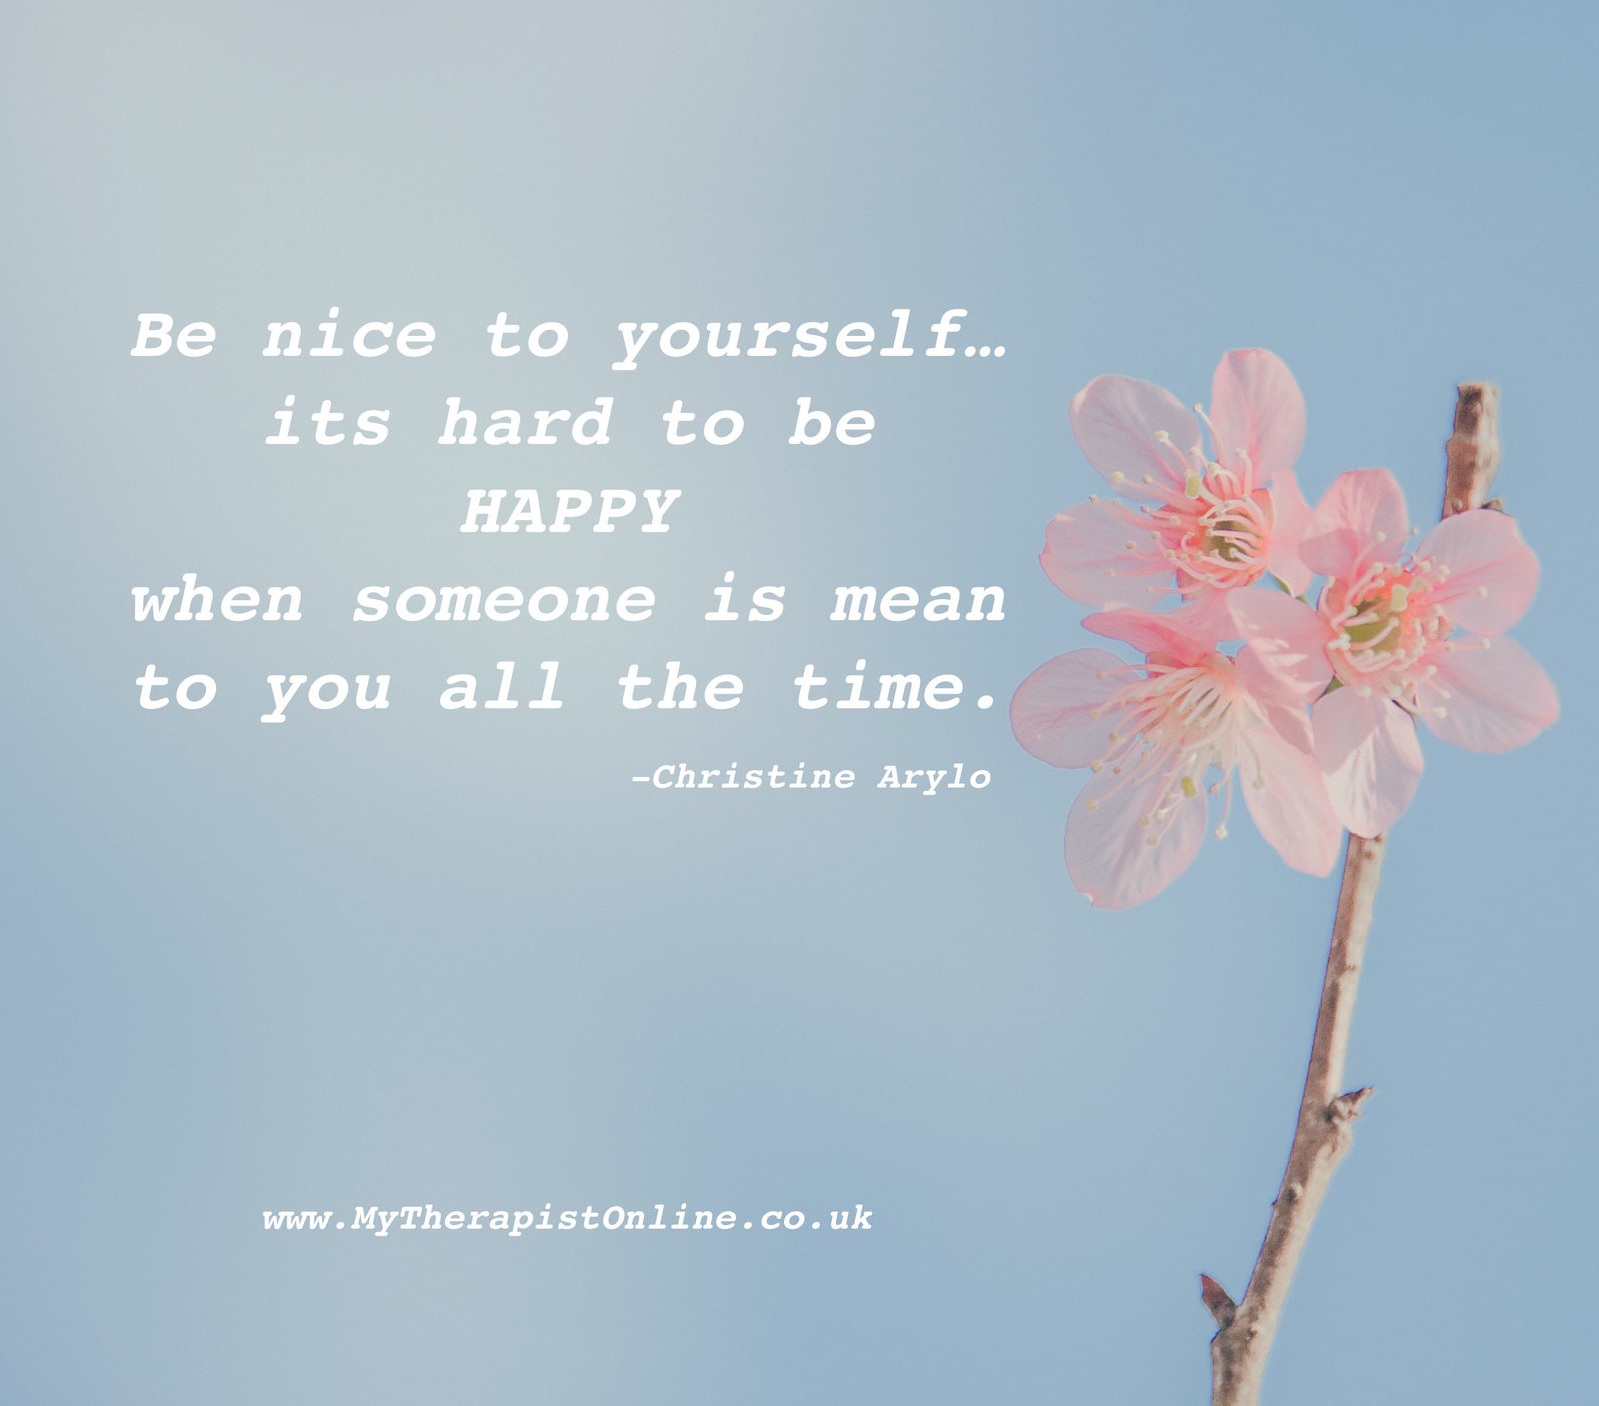 Online Therapy - UK - Be kinder to yourself - my therapist online